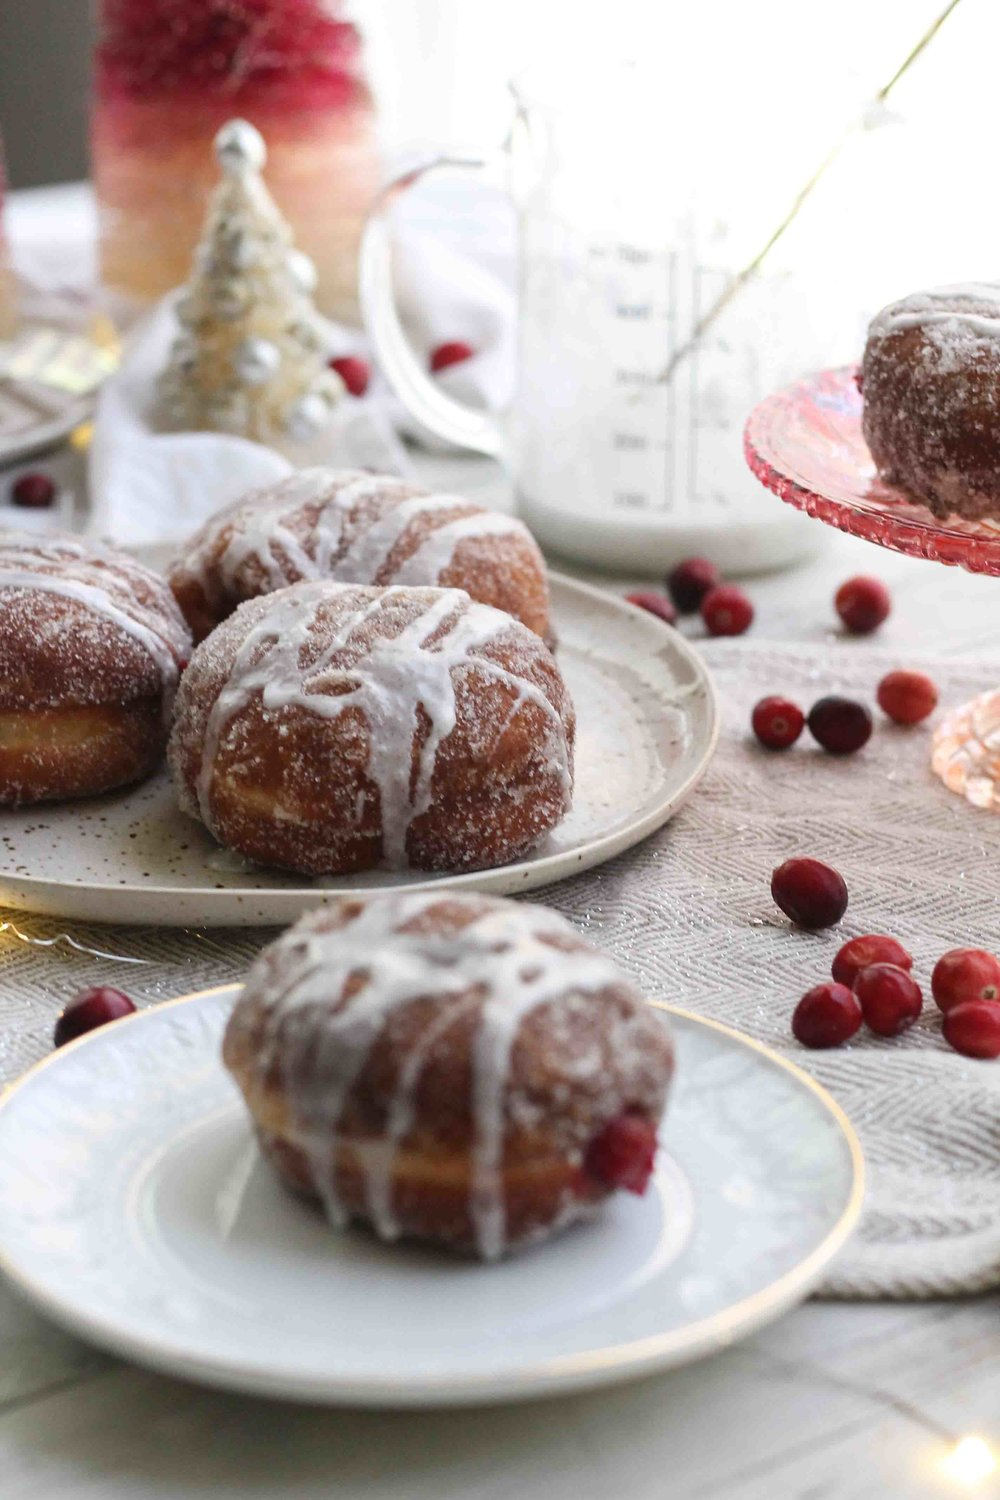 Soft, orange-scented doughnuts are rolled in cinnamon sugar and stuffed with homemade cranberry jelly before being drizzled with vanilla bean glaze.  The perfect Christmas morning treat.  {Pedantic Foodie}